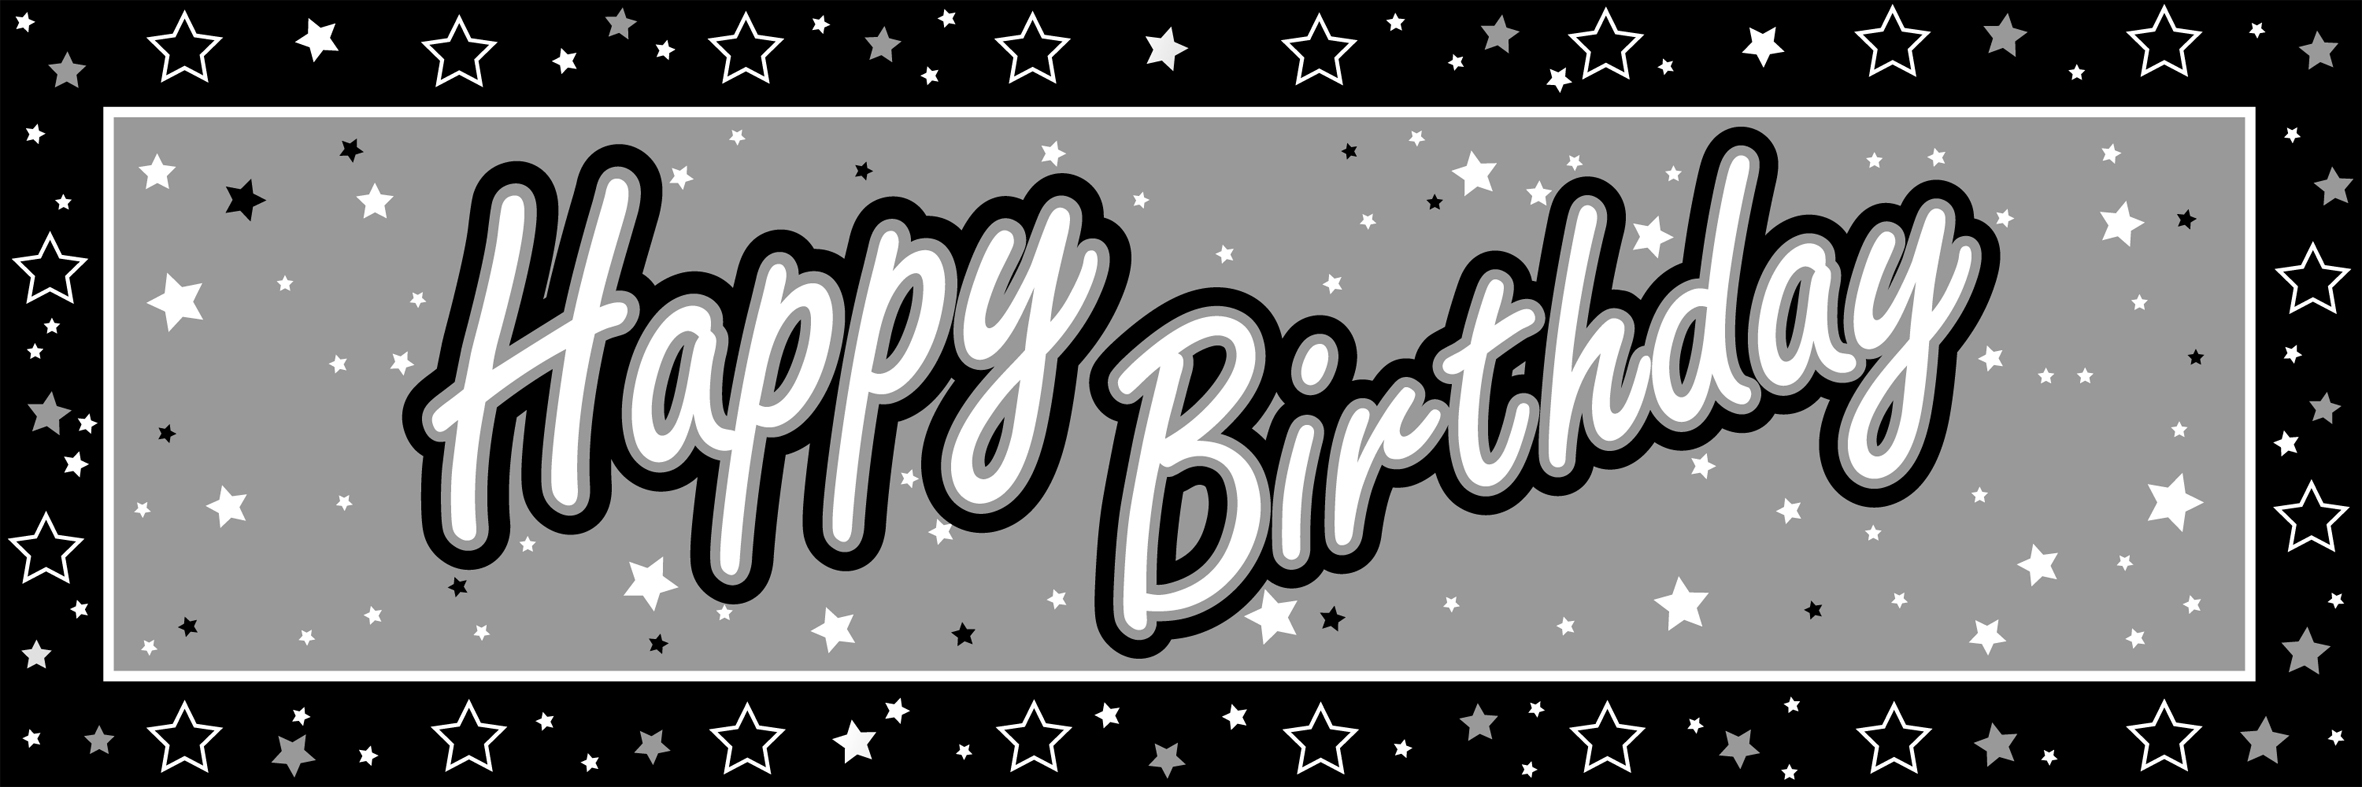 Wind Blown Trees Clipart 60th Birthday Black And White